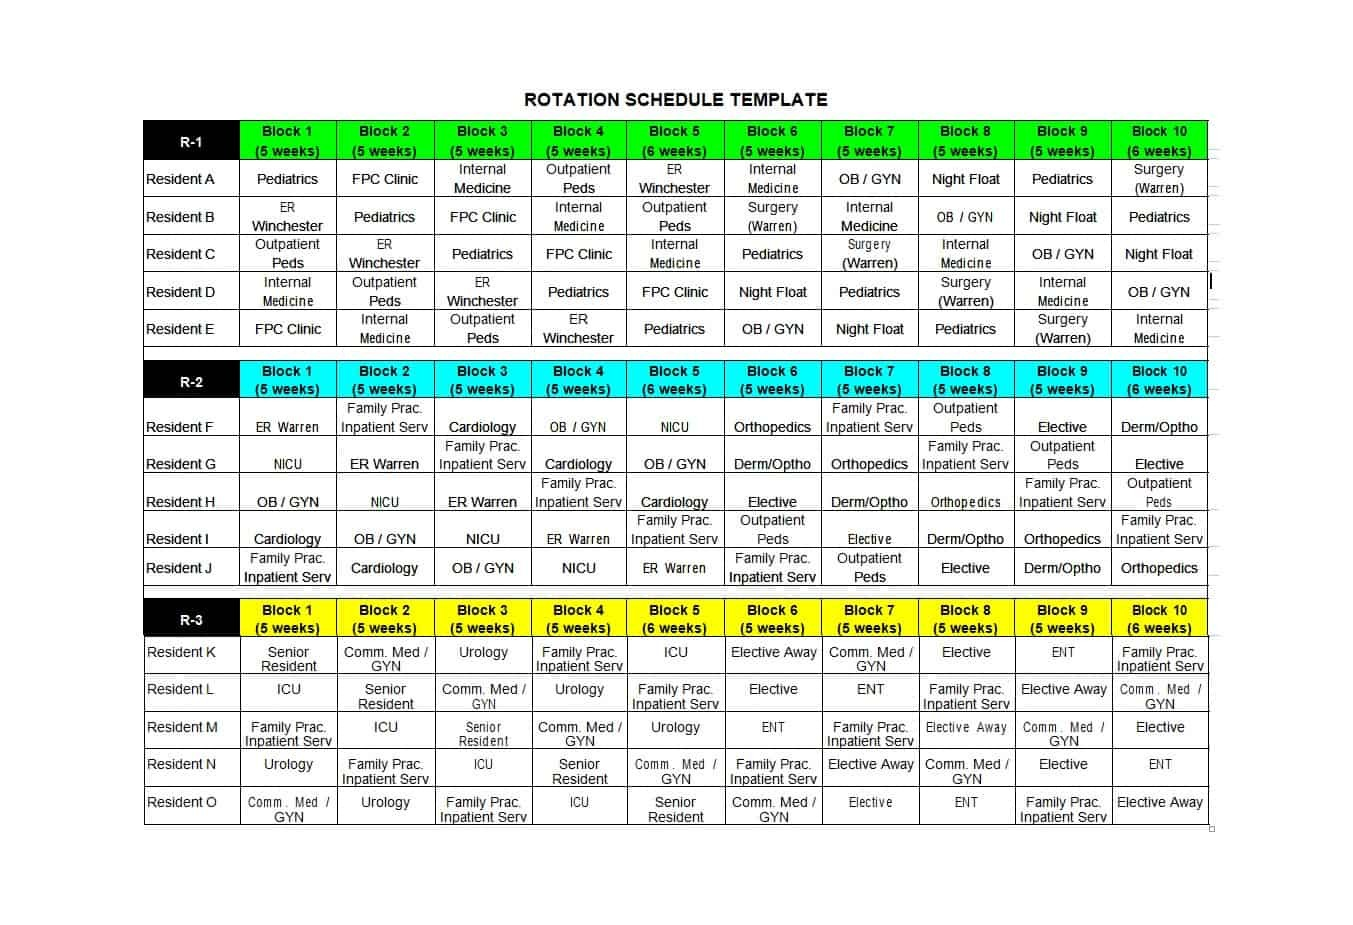 4 week rotation schedule template  50 FREE Rotating Schedule Templates for your Company ..